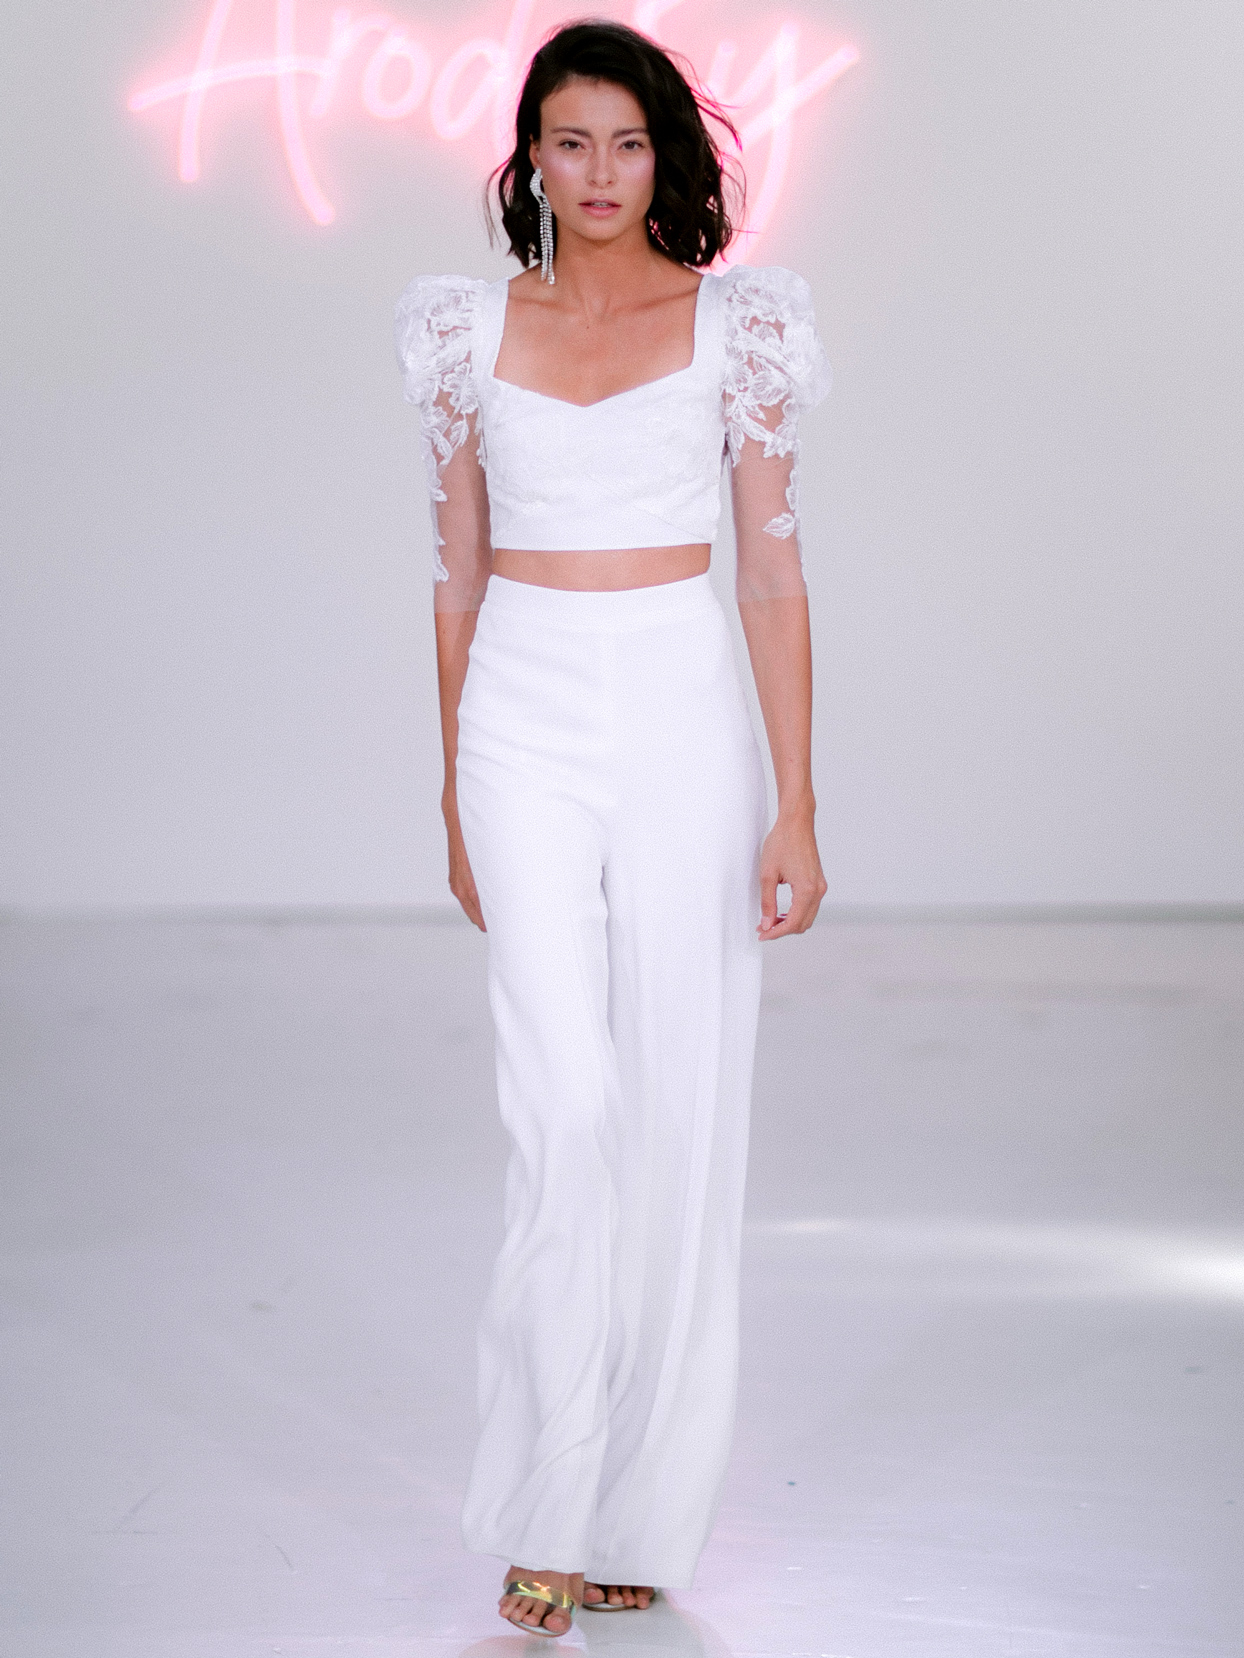 Rime Arodaky X The Mews Bridal two piece square neckline pants wedding dress fall 2020